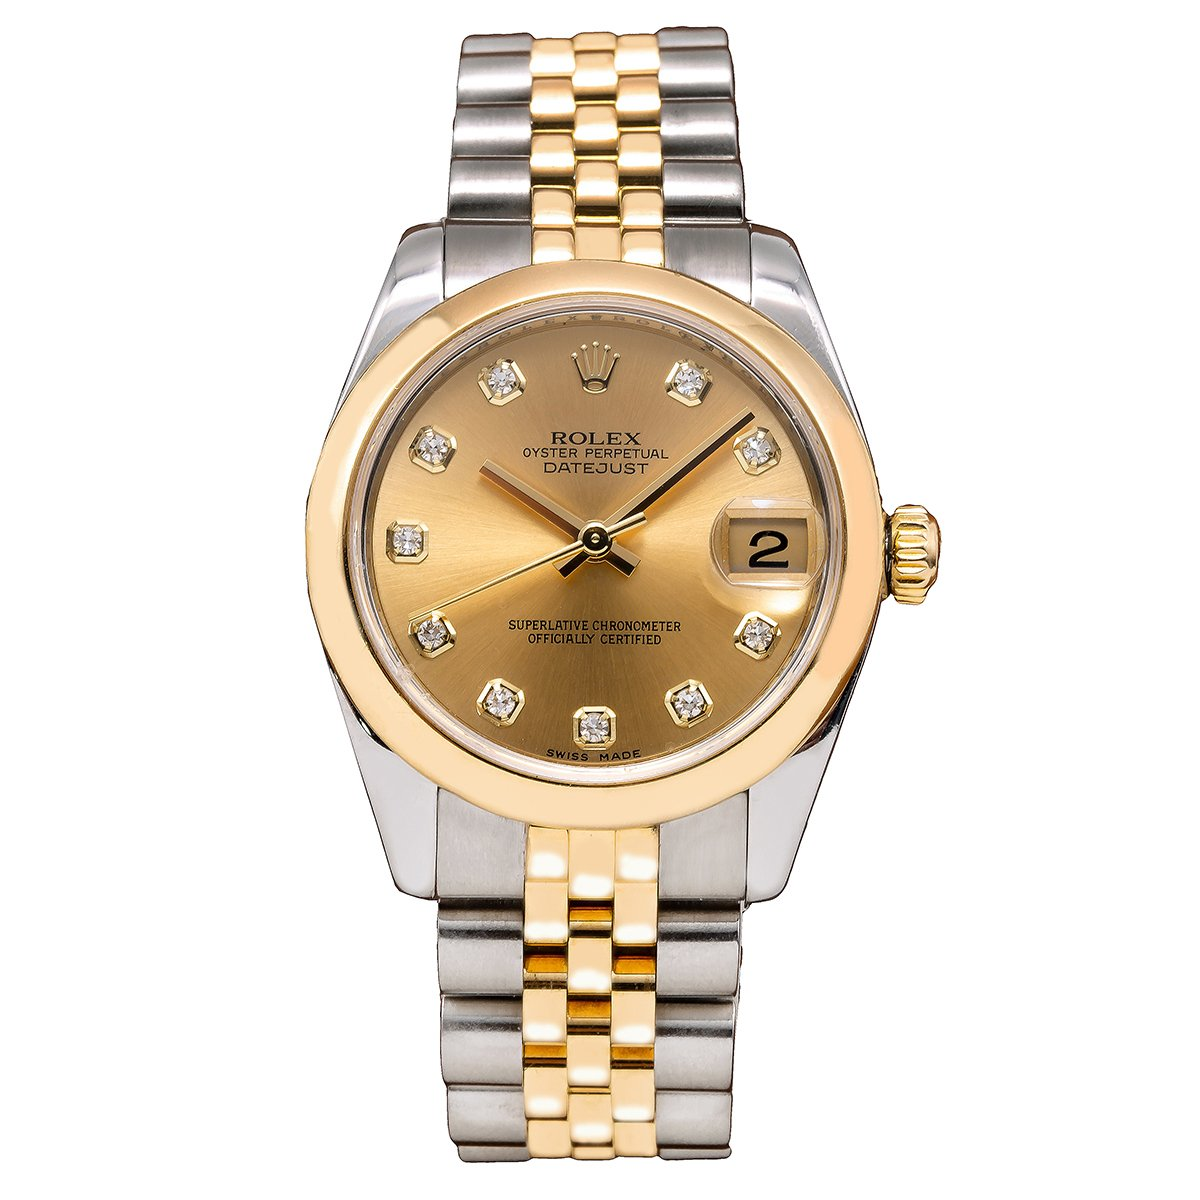 Rolex DateJust Two Tone Diamond Watch, 178243 31mm, Champagne Dial with Diamond Hour Markers